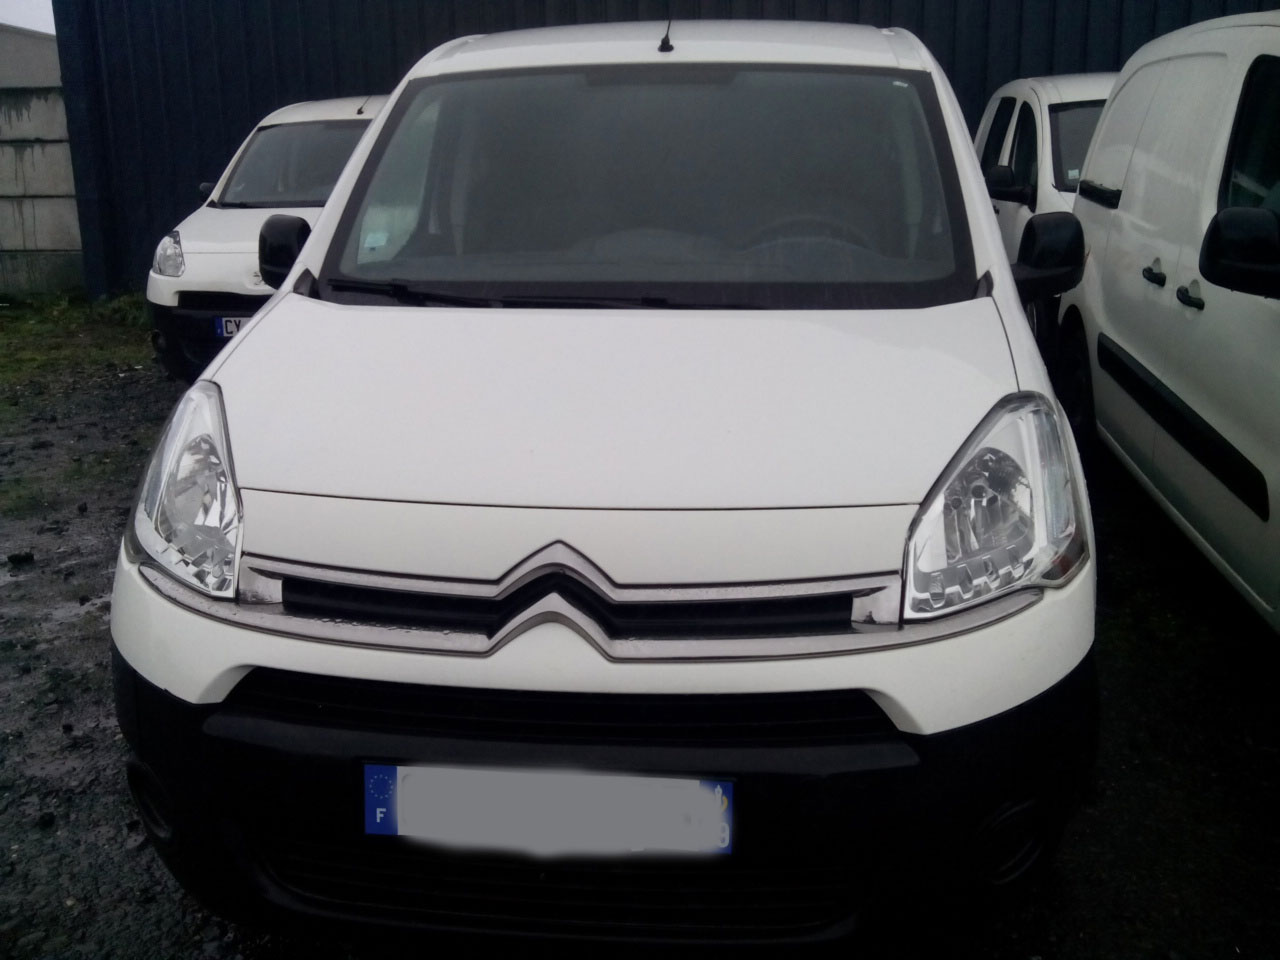 Voiture Citroen Berlingo (10/02/2014) - blanc - lieu: Lille - Paris